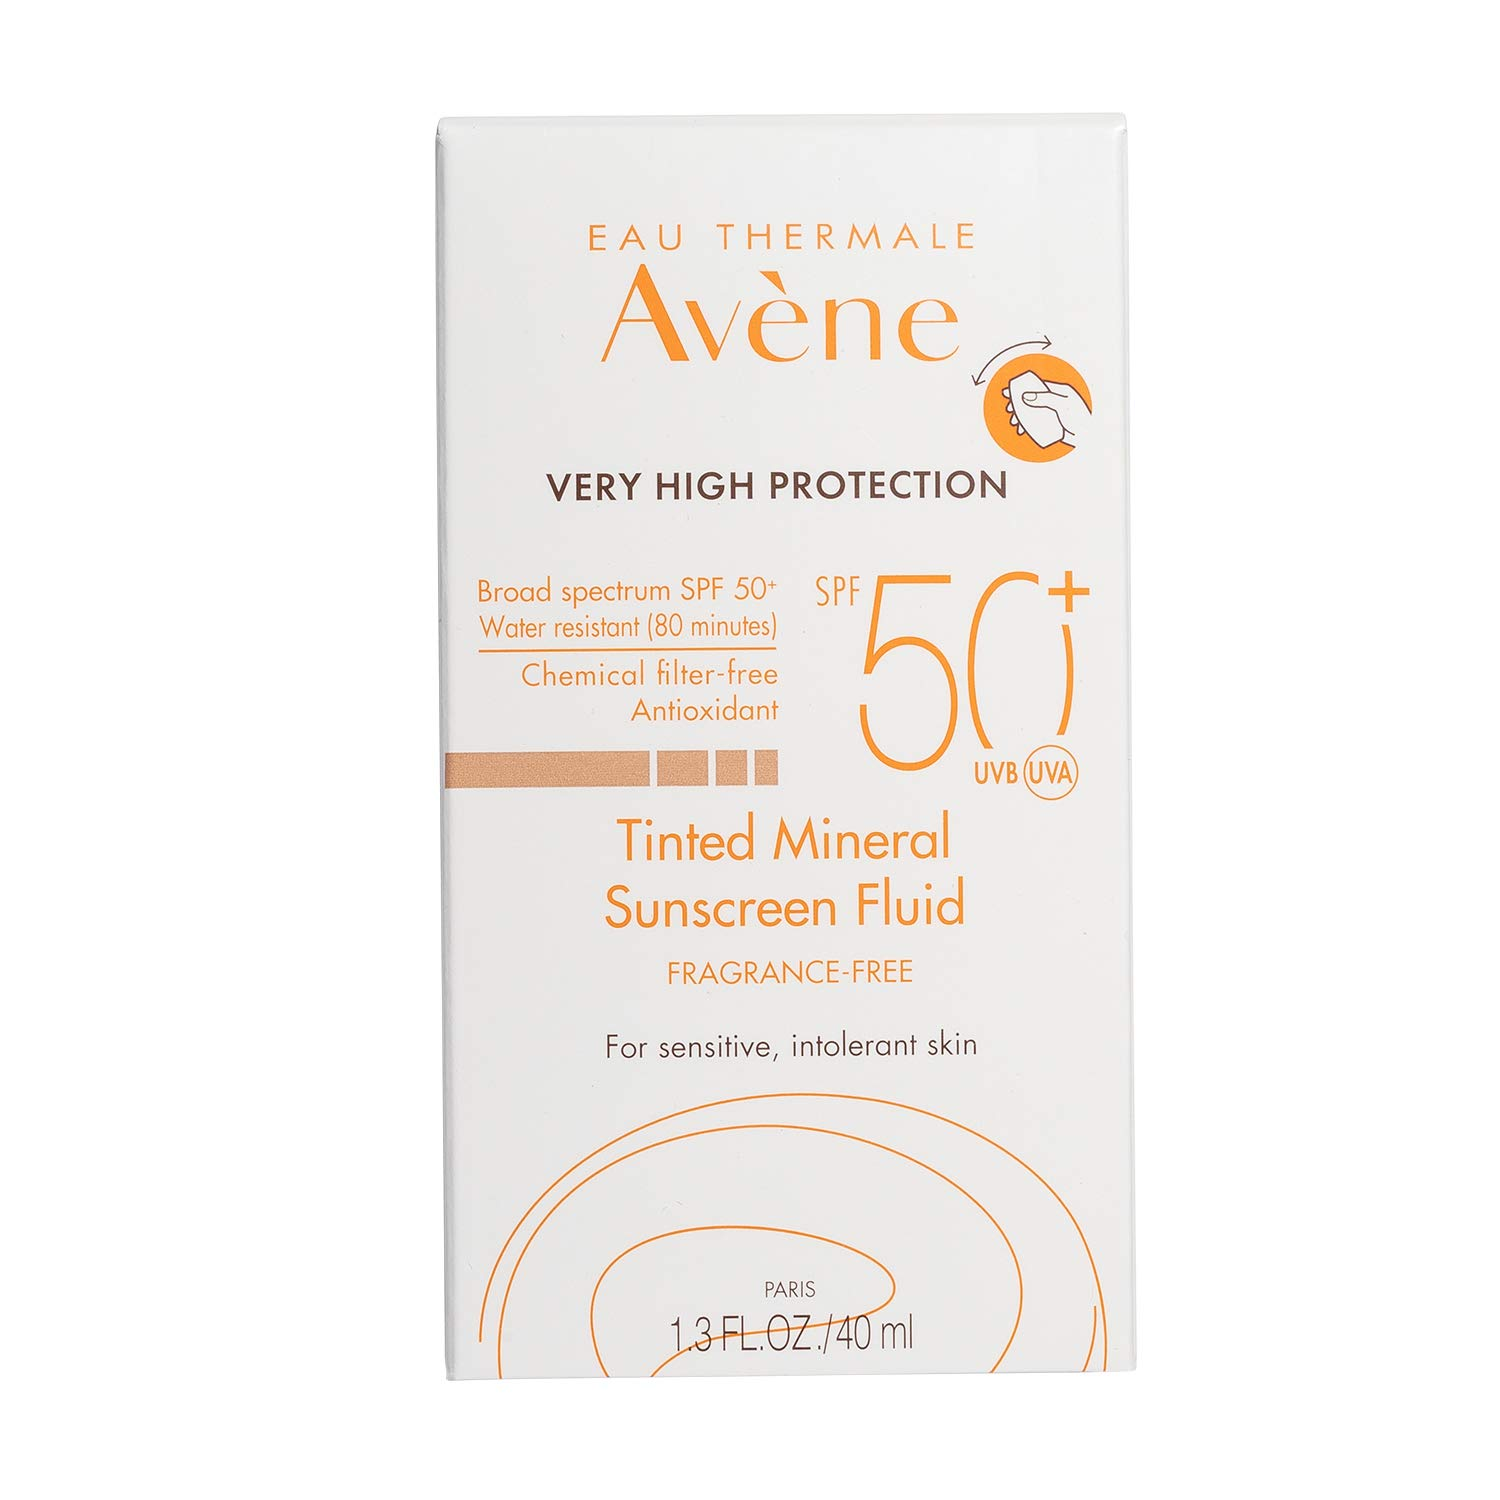 fc0b58c44b38 Amazon.com: Eau Thermale Avene Tinted Mineral Fluid Sunscreen, Broad  Spectrum SPF 50+, UVA/UVB Blue Light Protection, Water Resistant,  Non-Greasy, 1.3 oz.